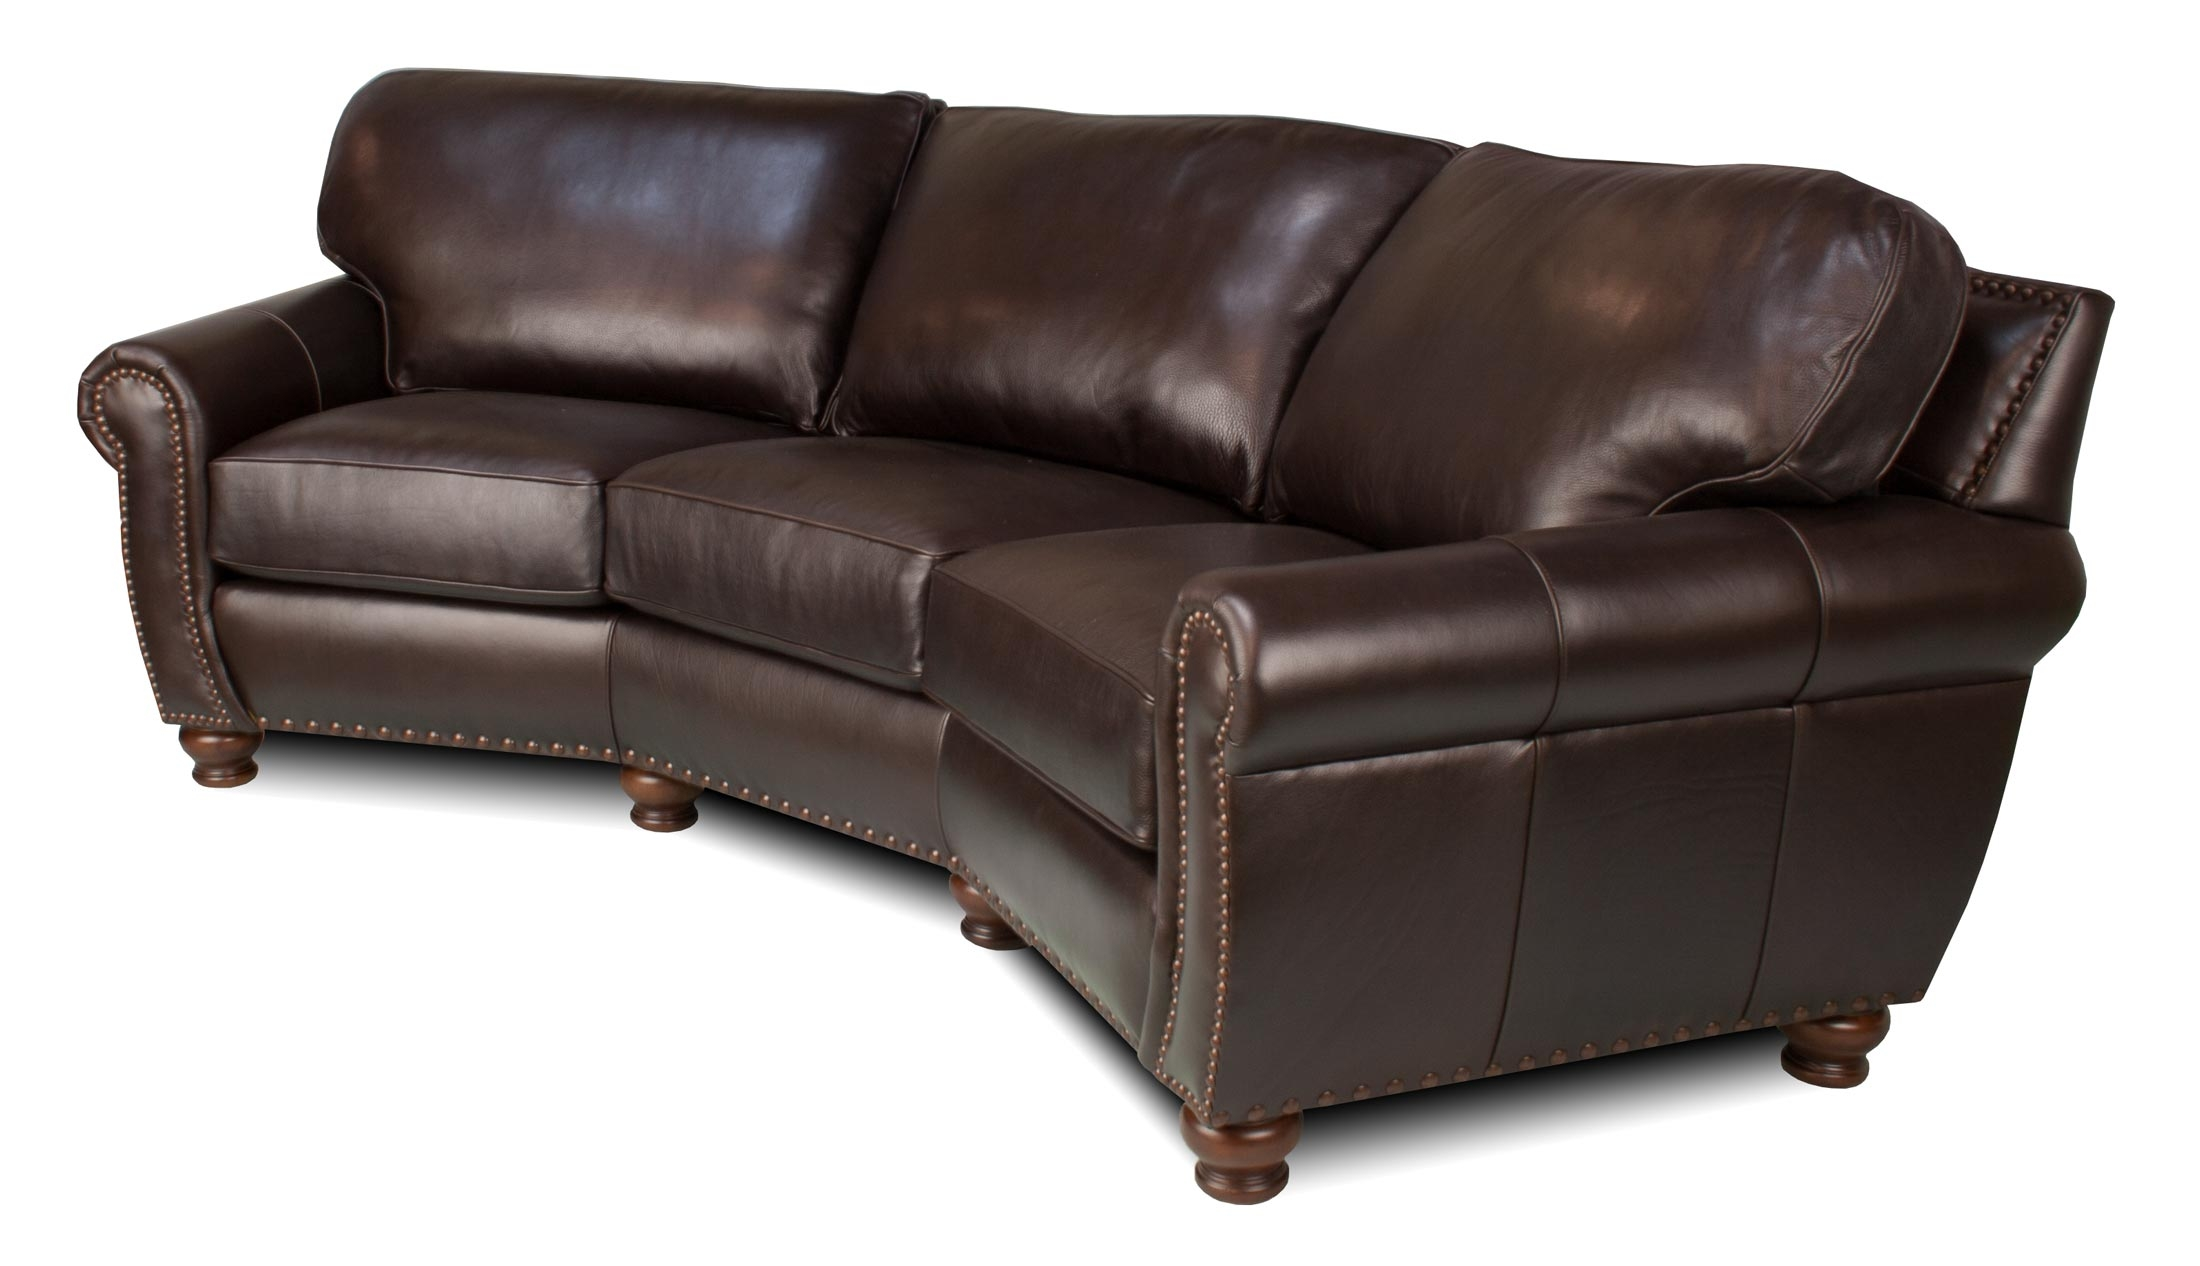 Berkshire Leather Sectional With Regard To Angled Sofa Sectional (Image 4 of 15)